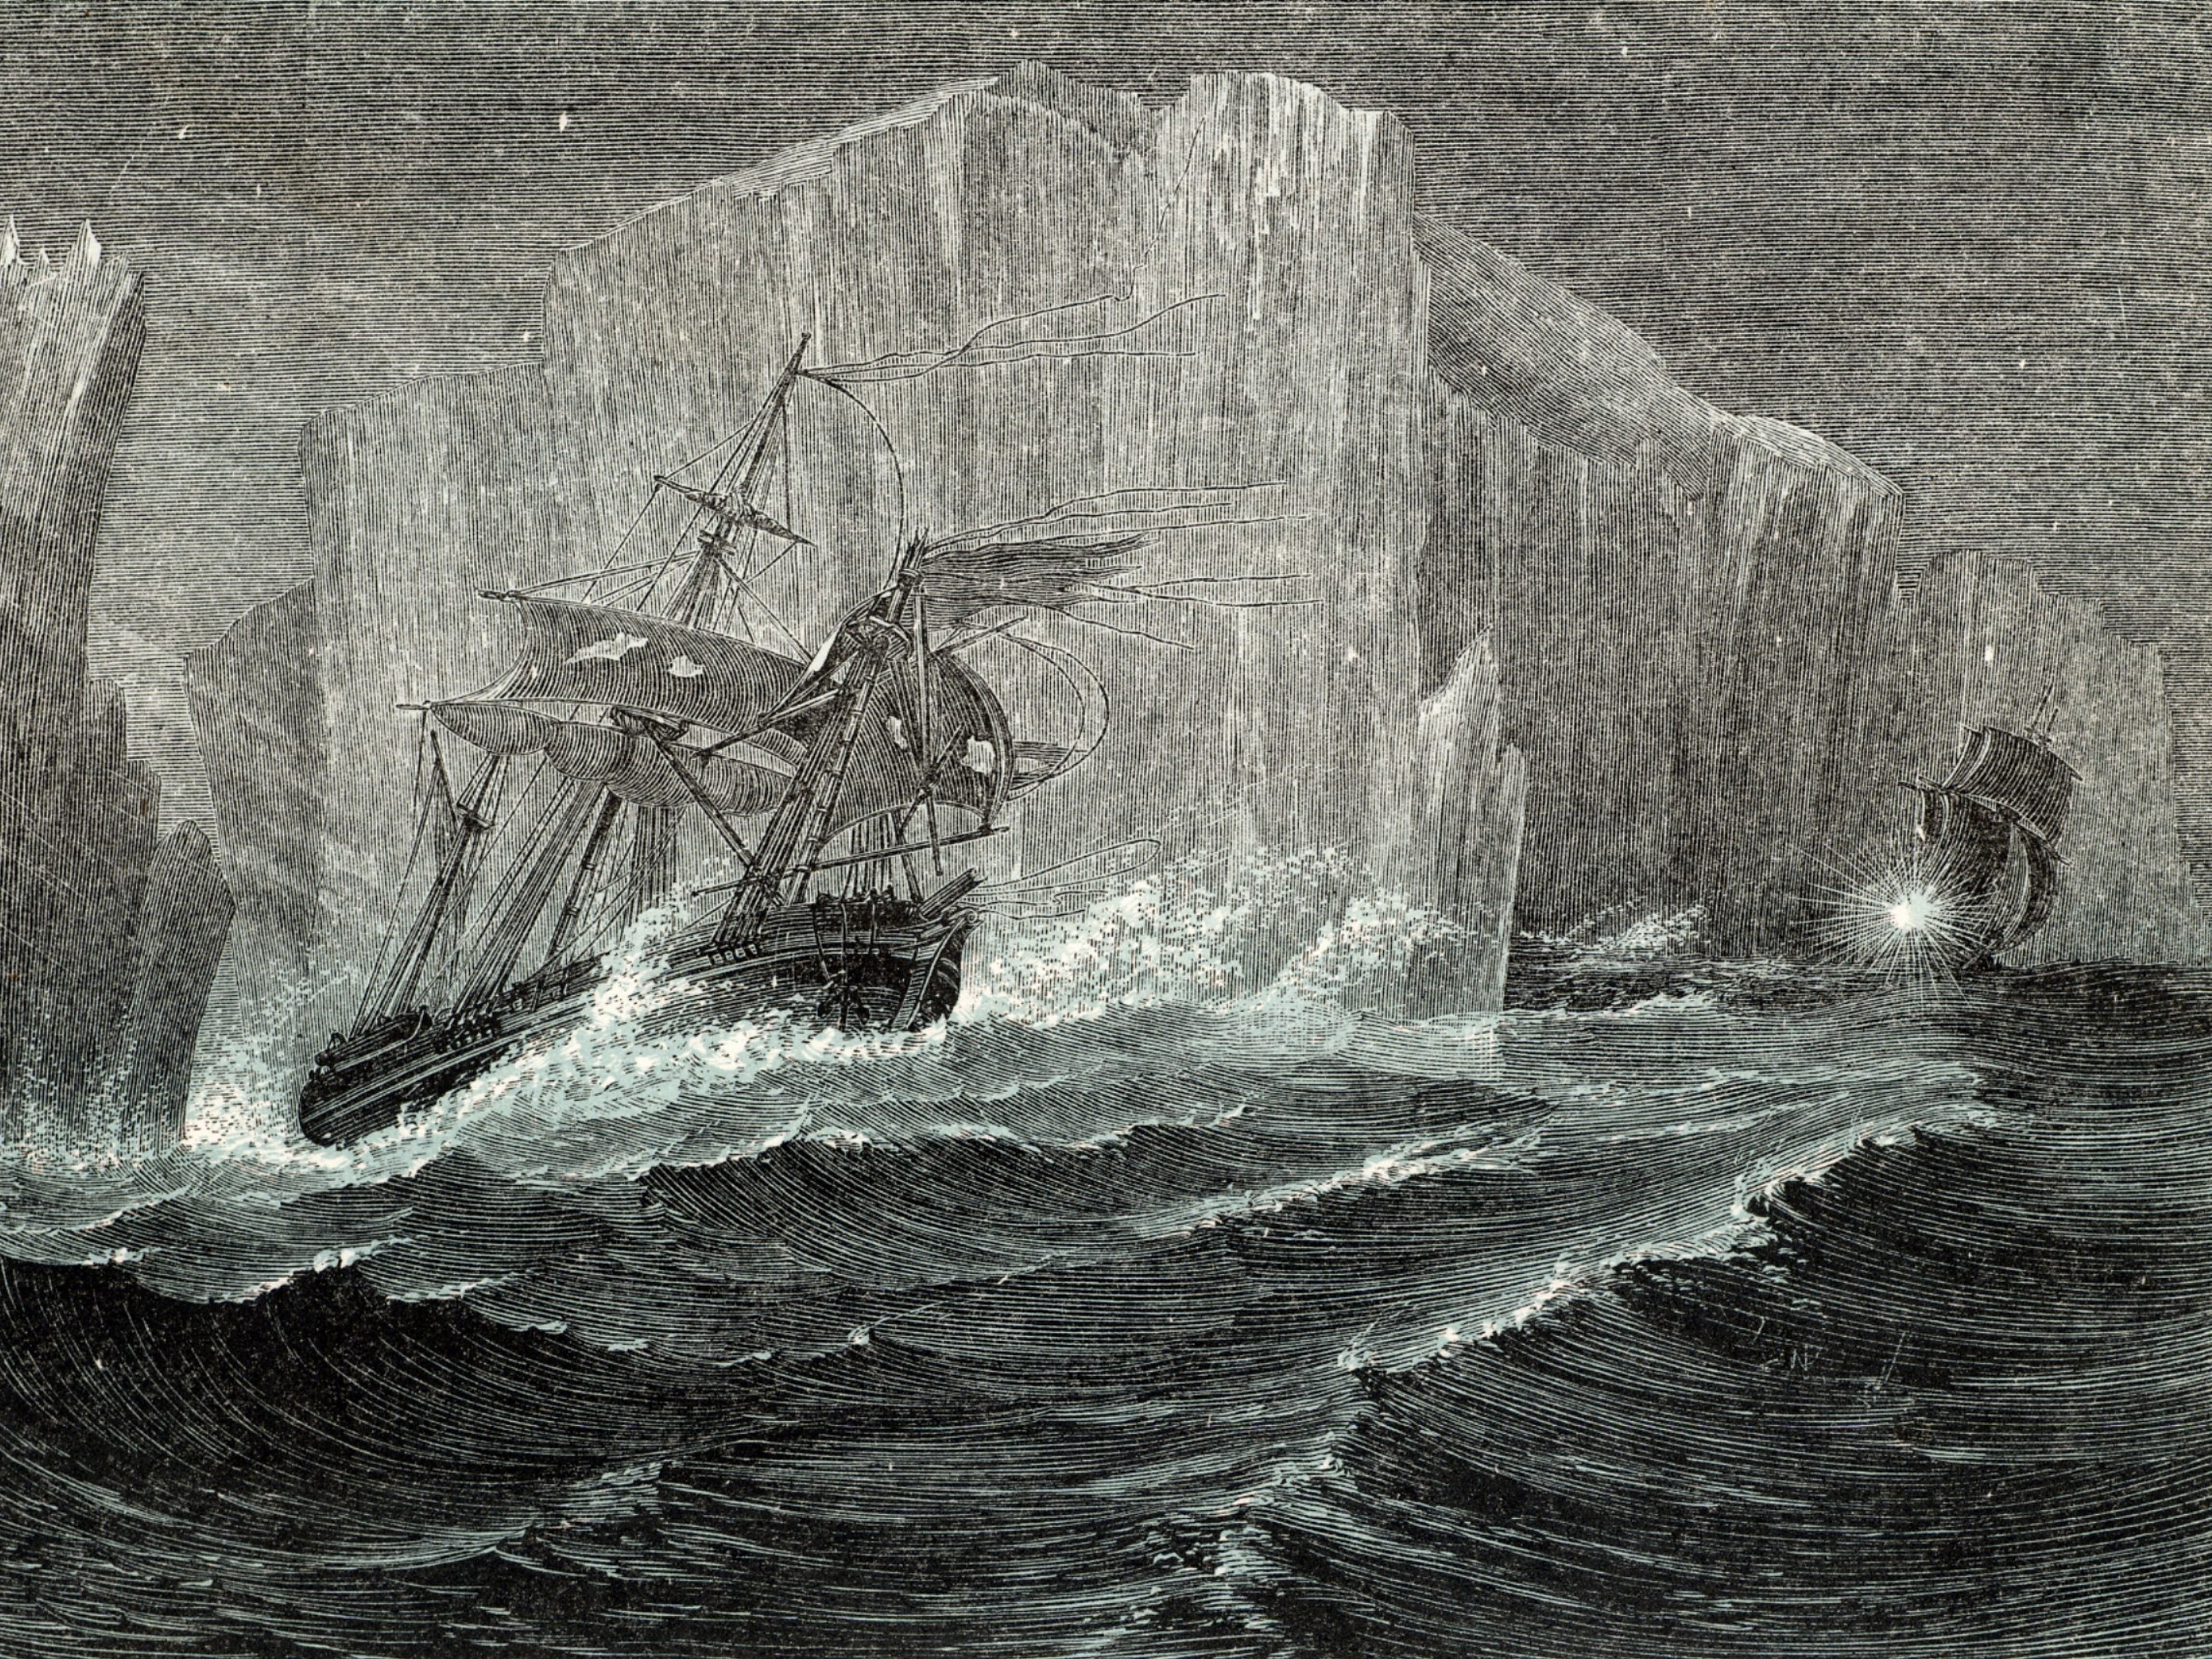 Canada Says It Has Found Ship From Doomed 1845 Arctic Expedition